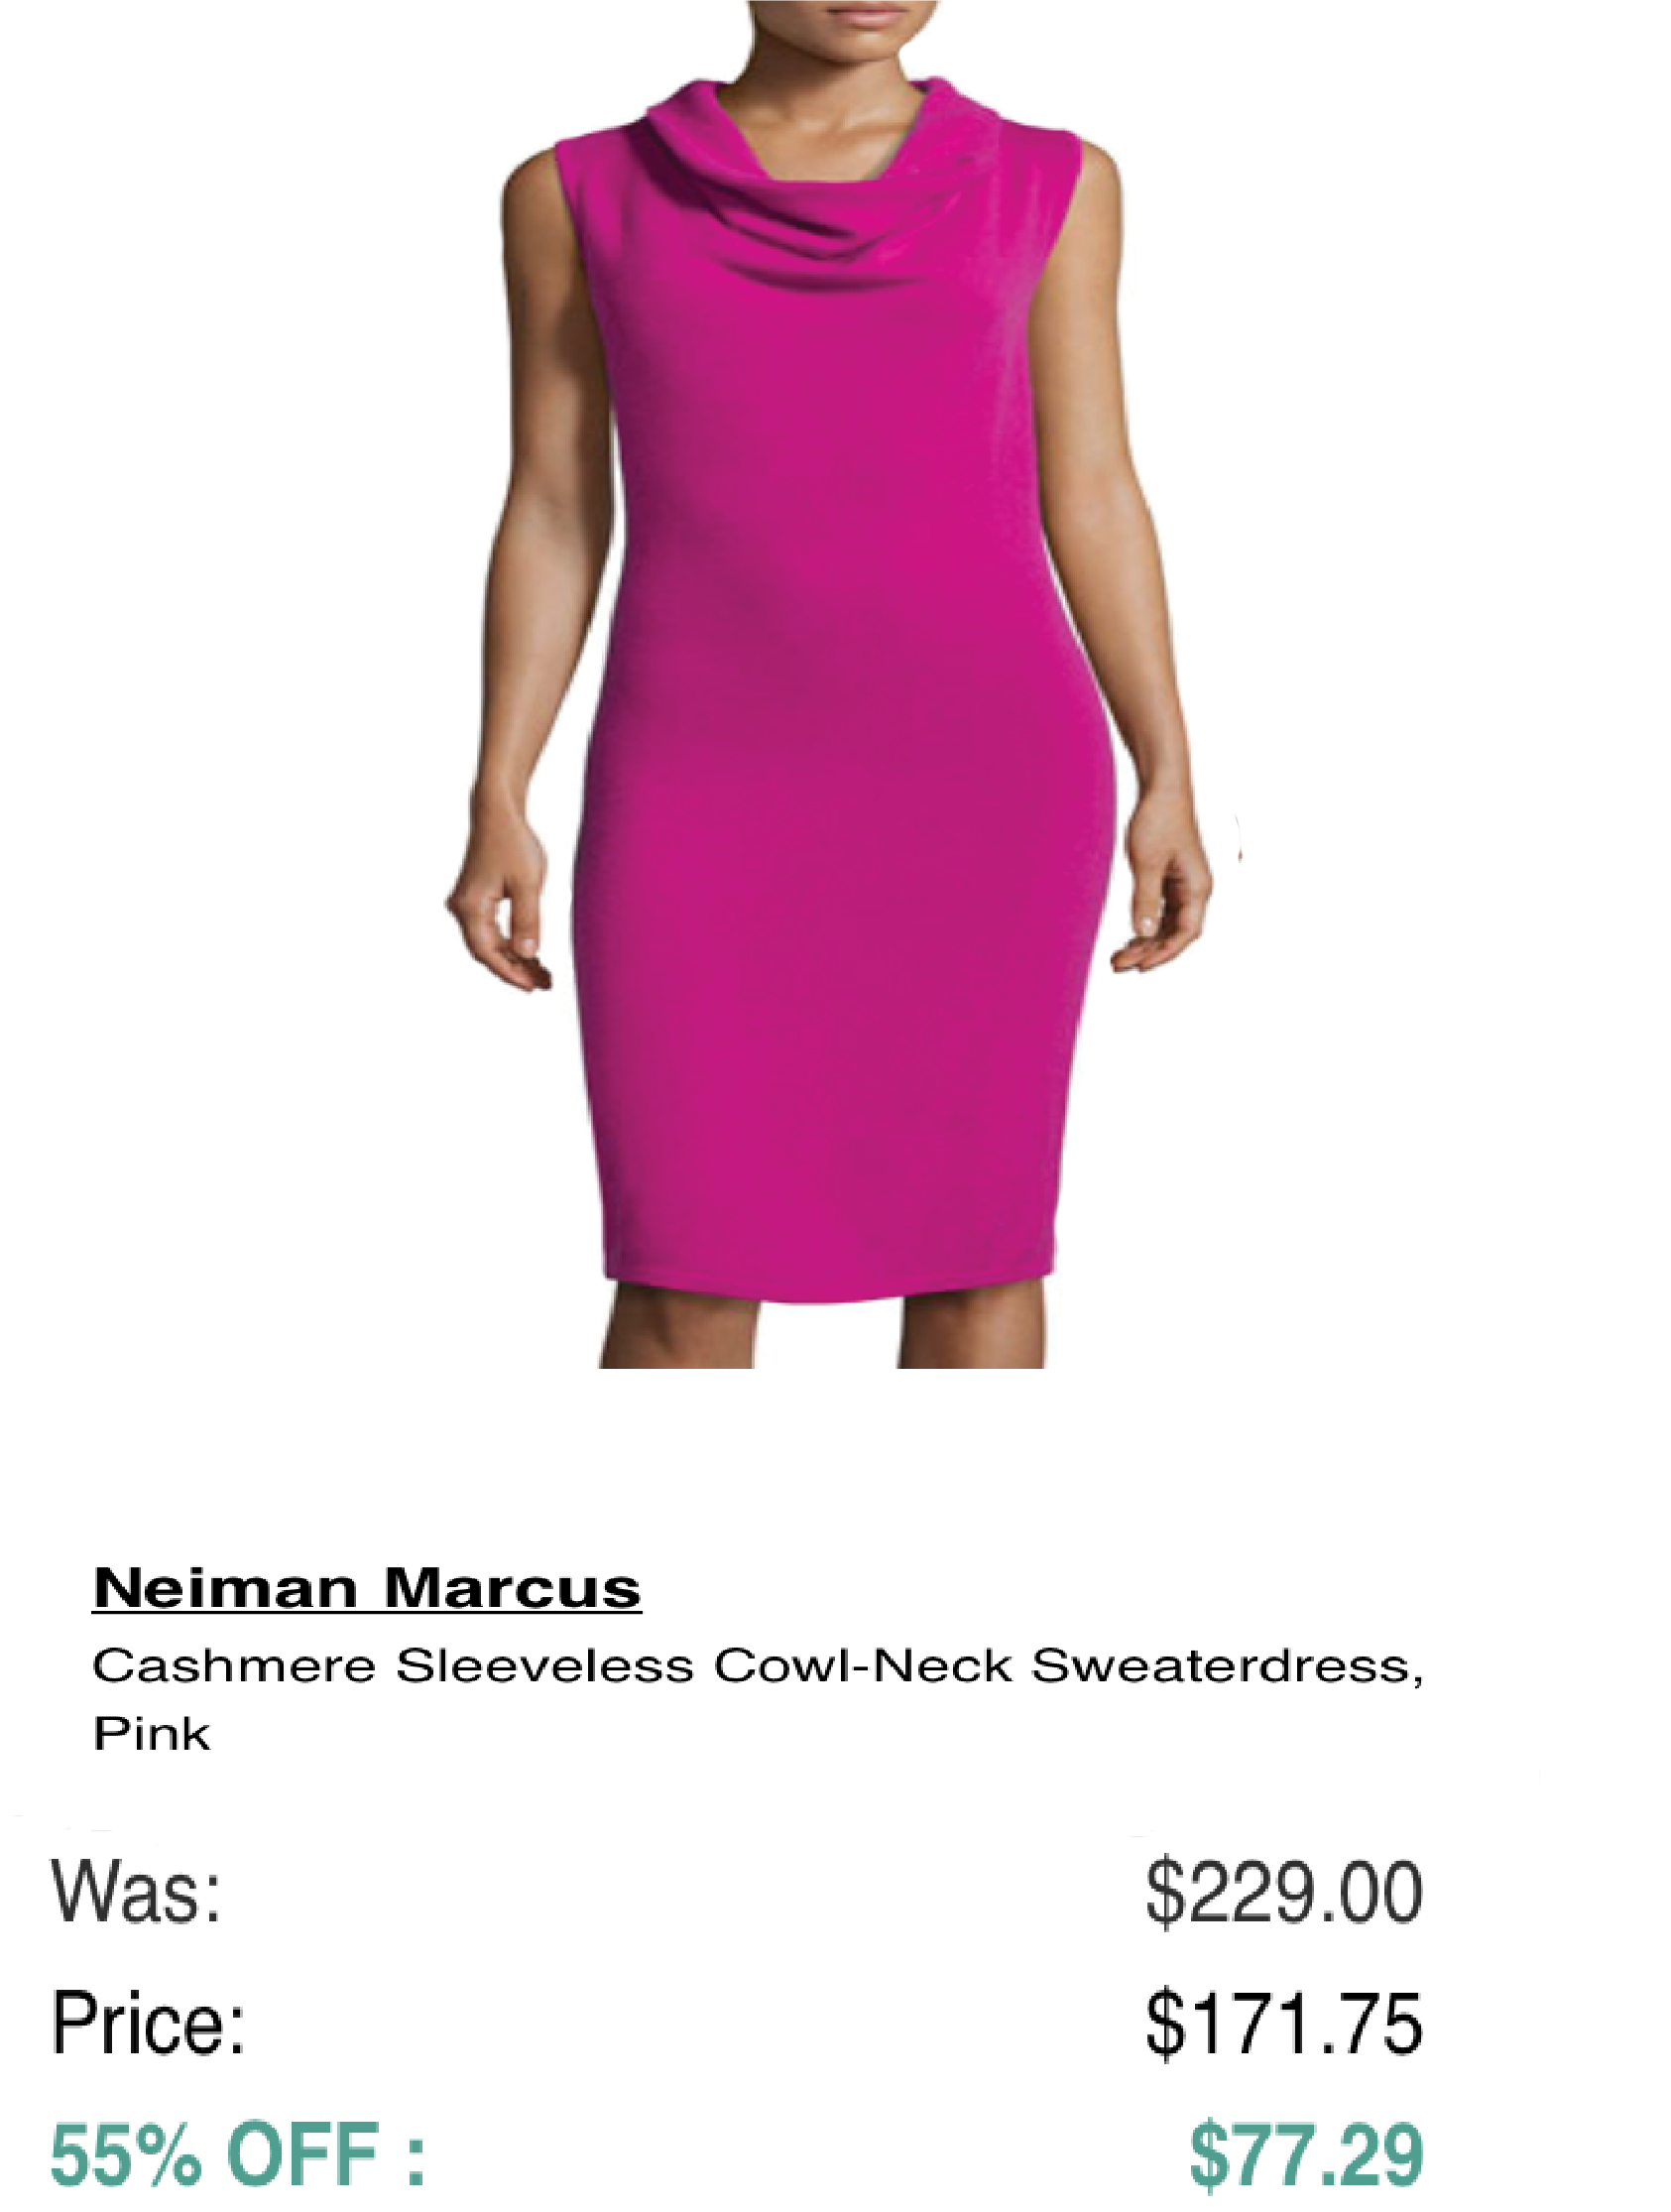 CyberMonday continues at our Online Mall! Shop 120 stores with one URL http://tryiton-online.com/your-mall for deals like this one on cashmere sweaters at http://tryiton-online.com/your-mall/neiman-marcus-last-call/  Hurry! Sale ends in 2 hours!